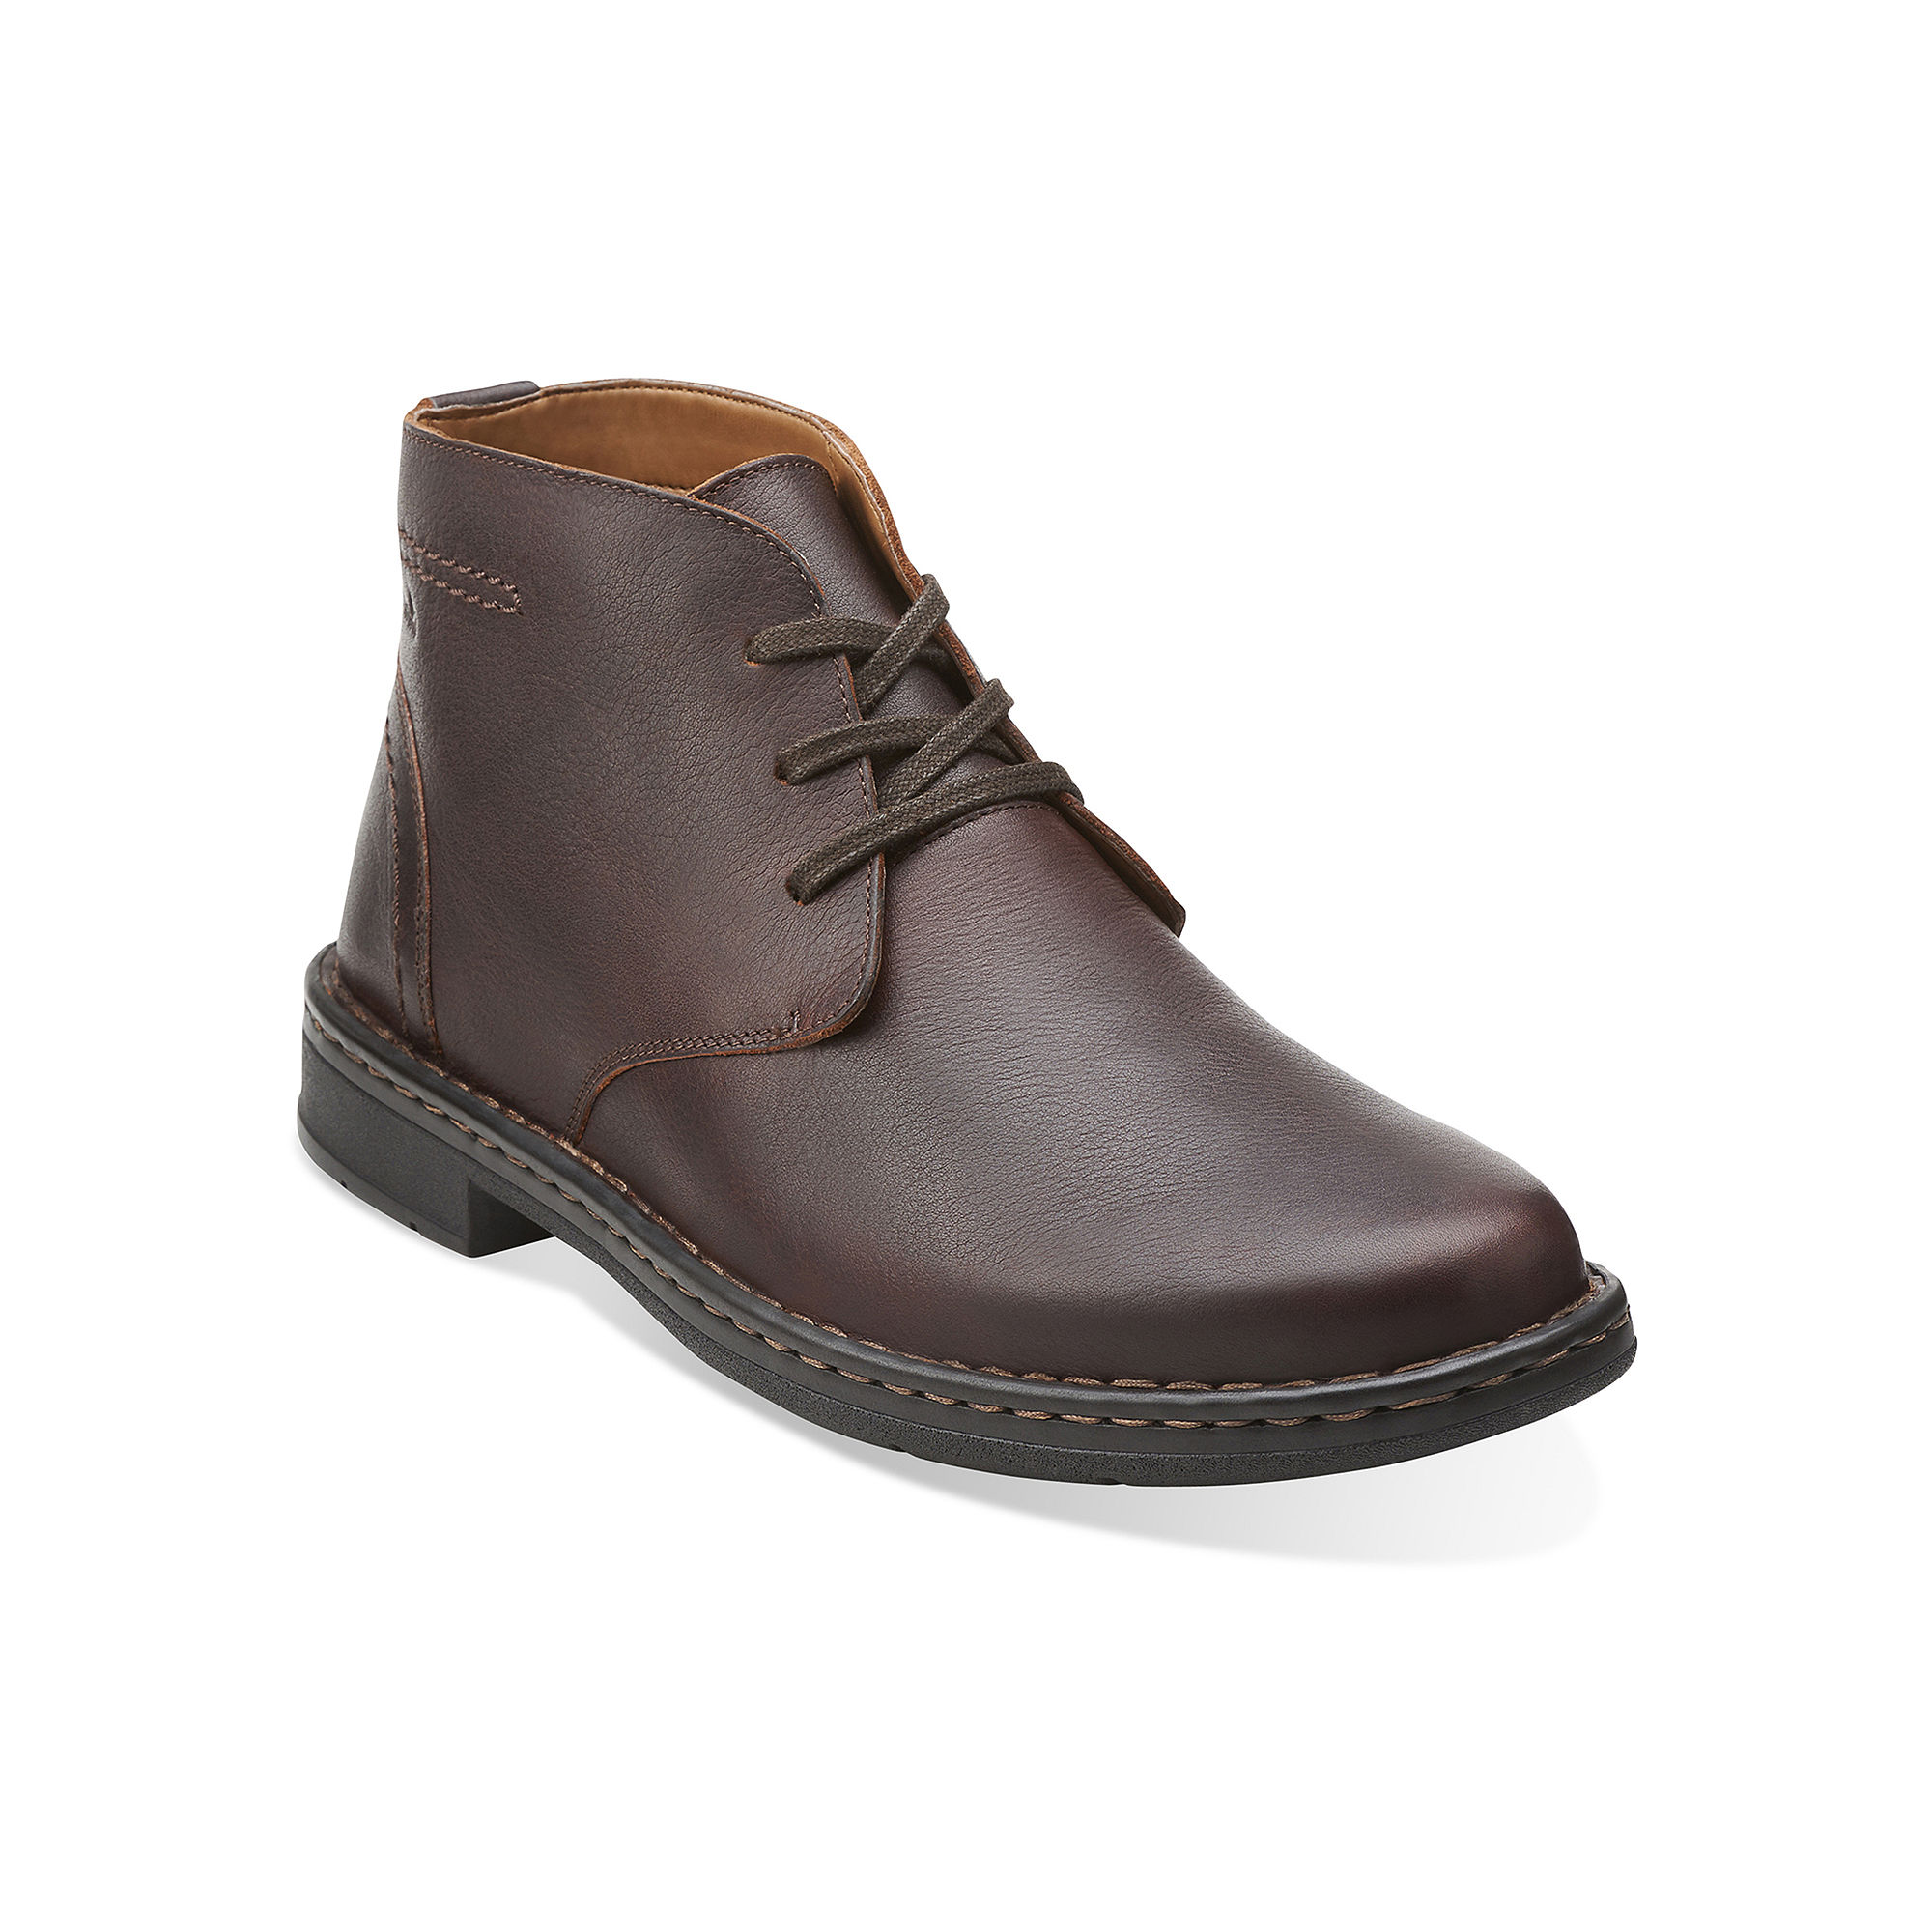 Clarks Kyros Limit Mens Leather Boots